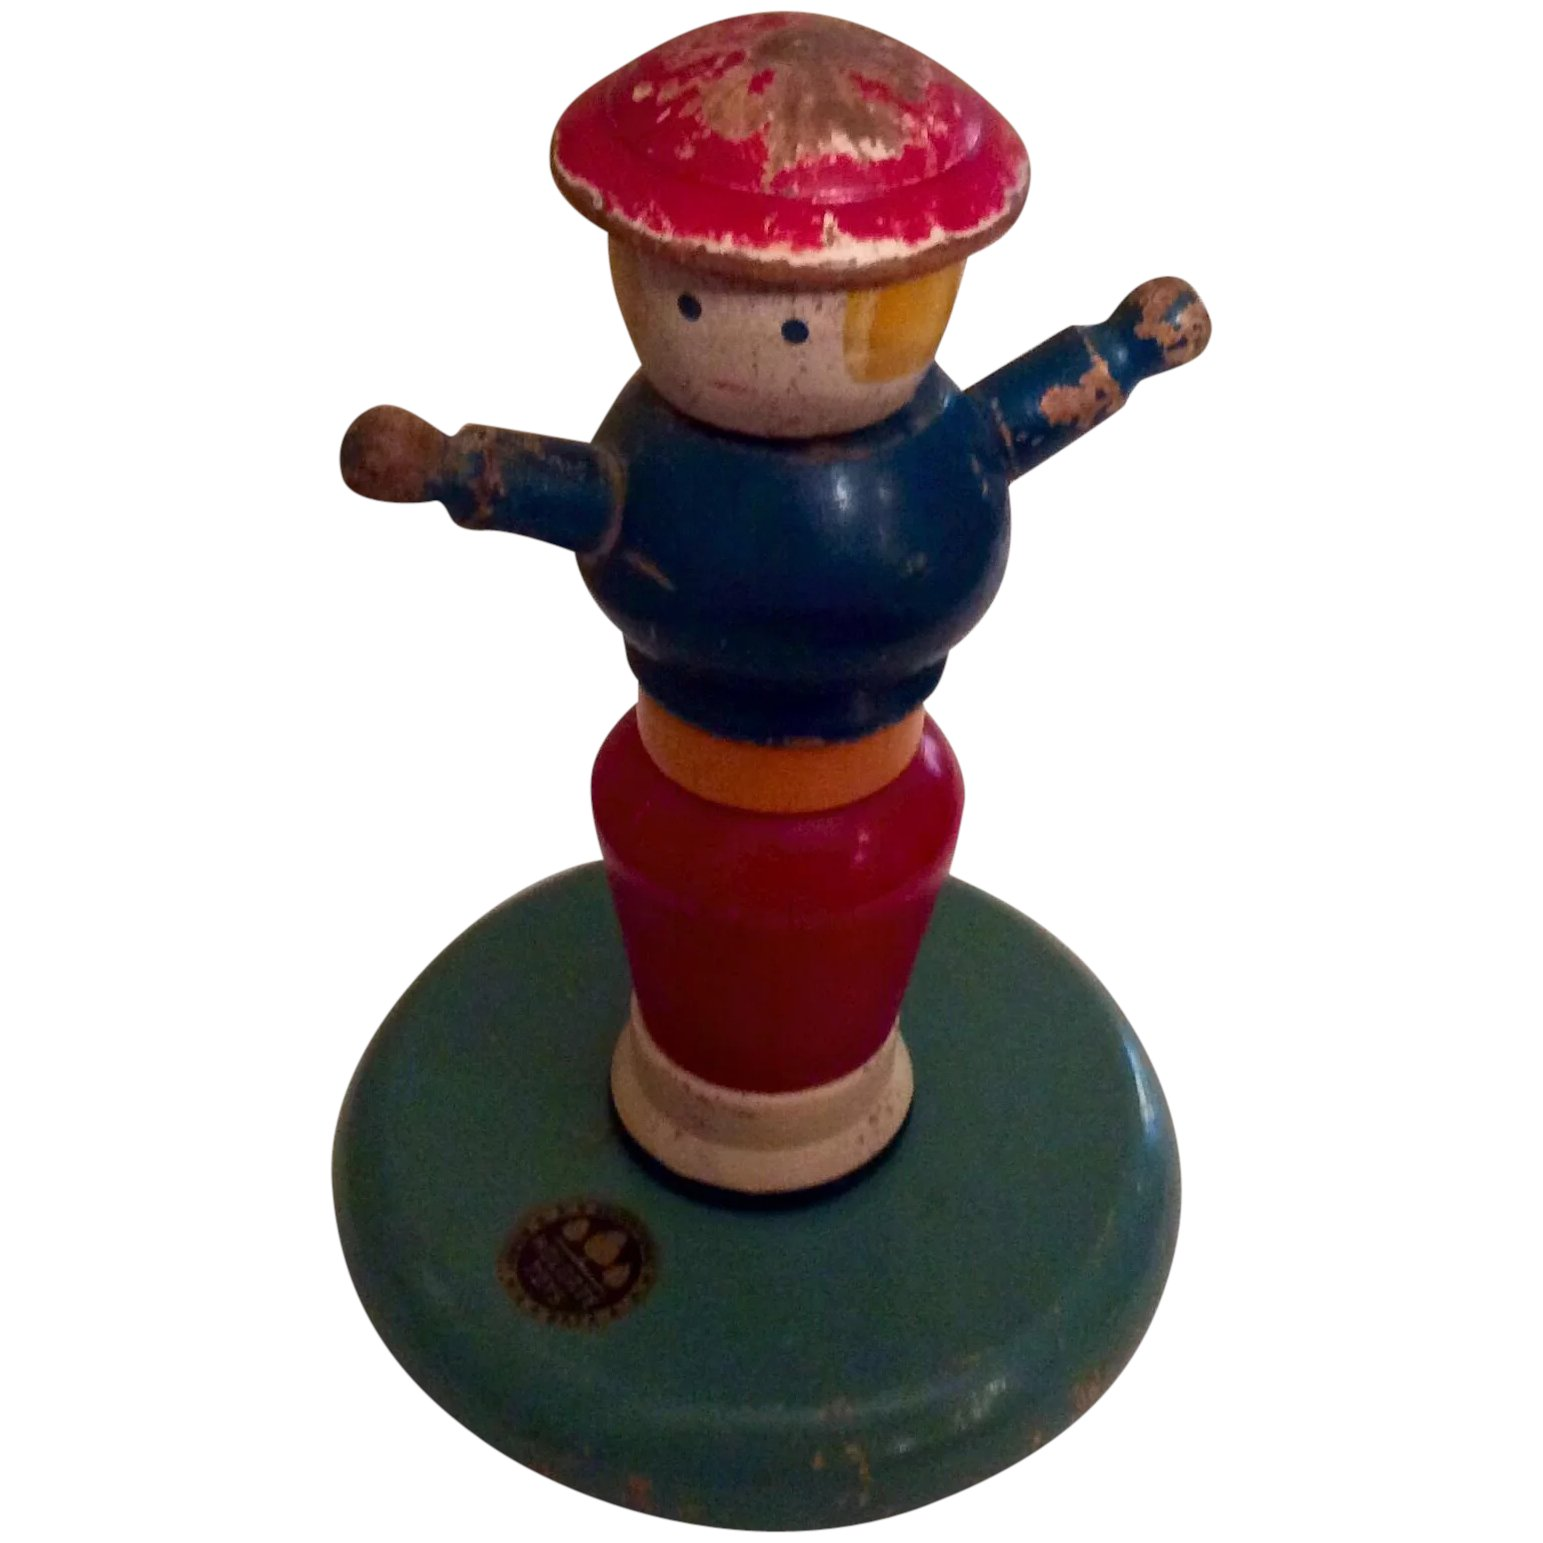 Holgate Wooden Stacking Toy 1946